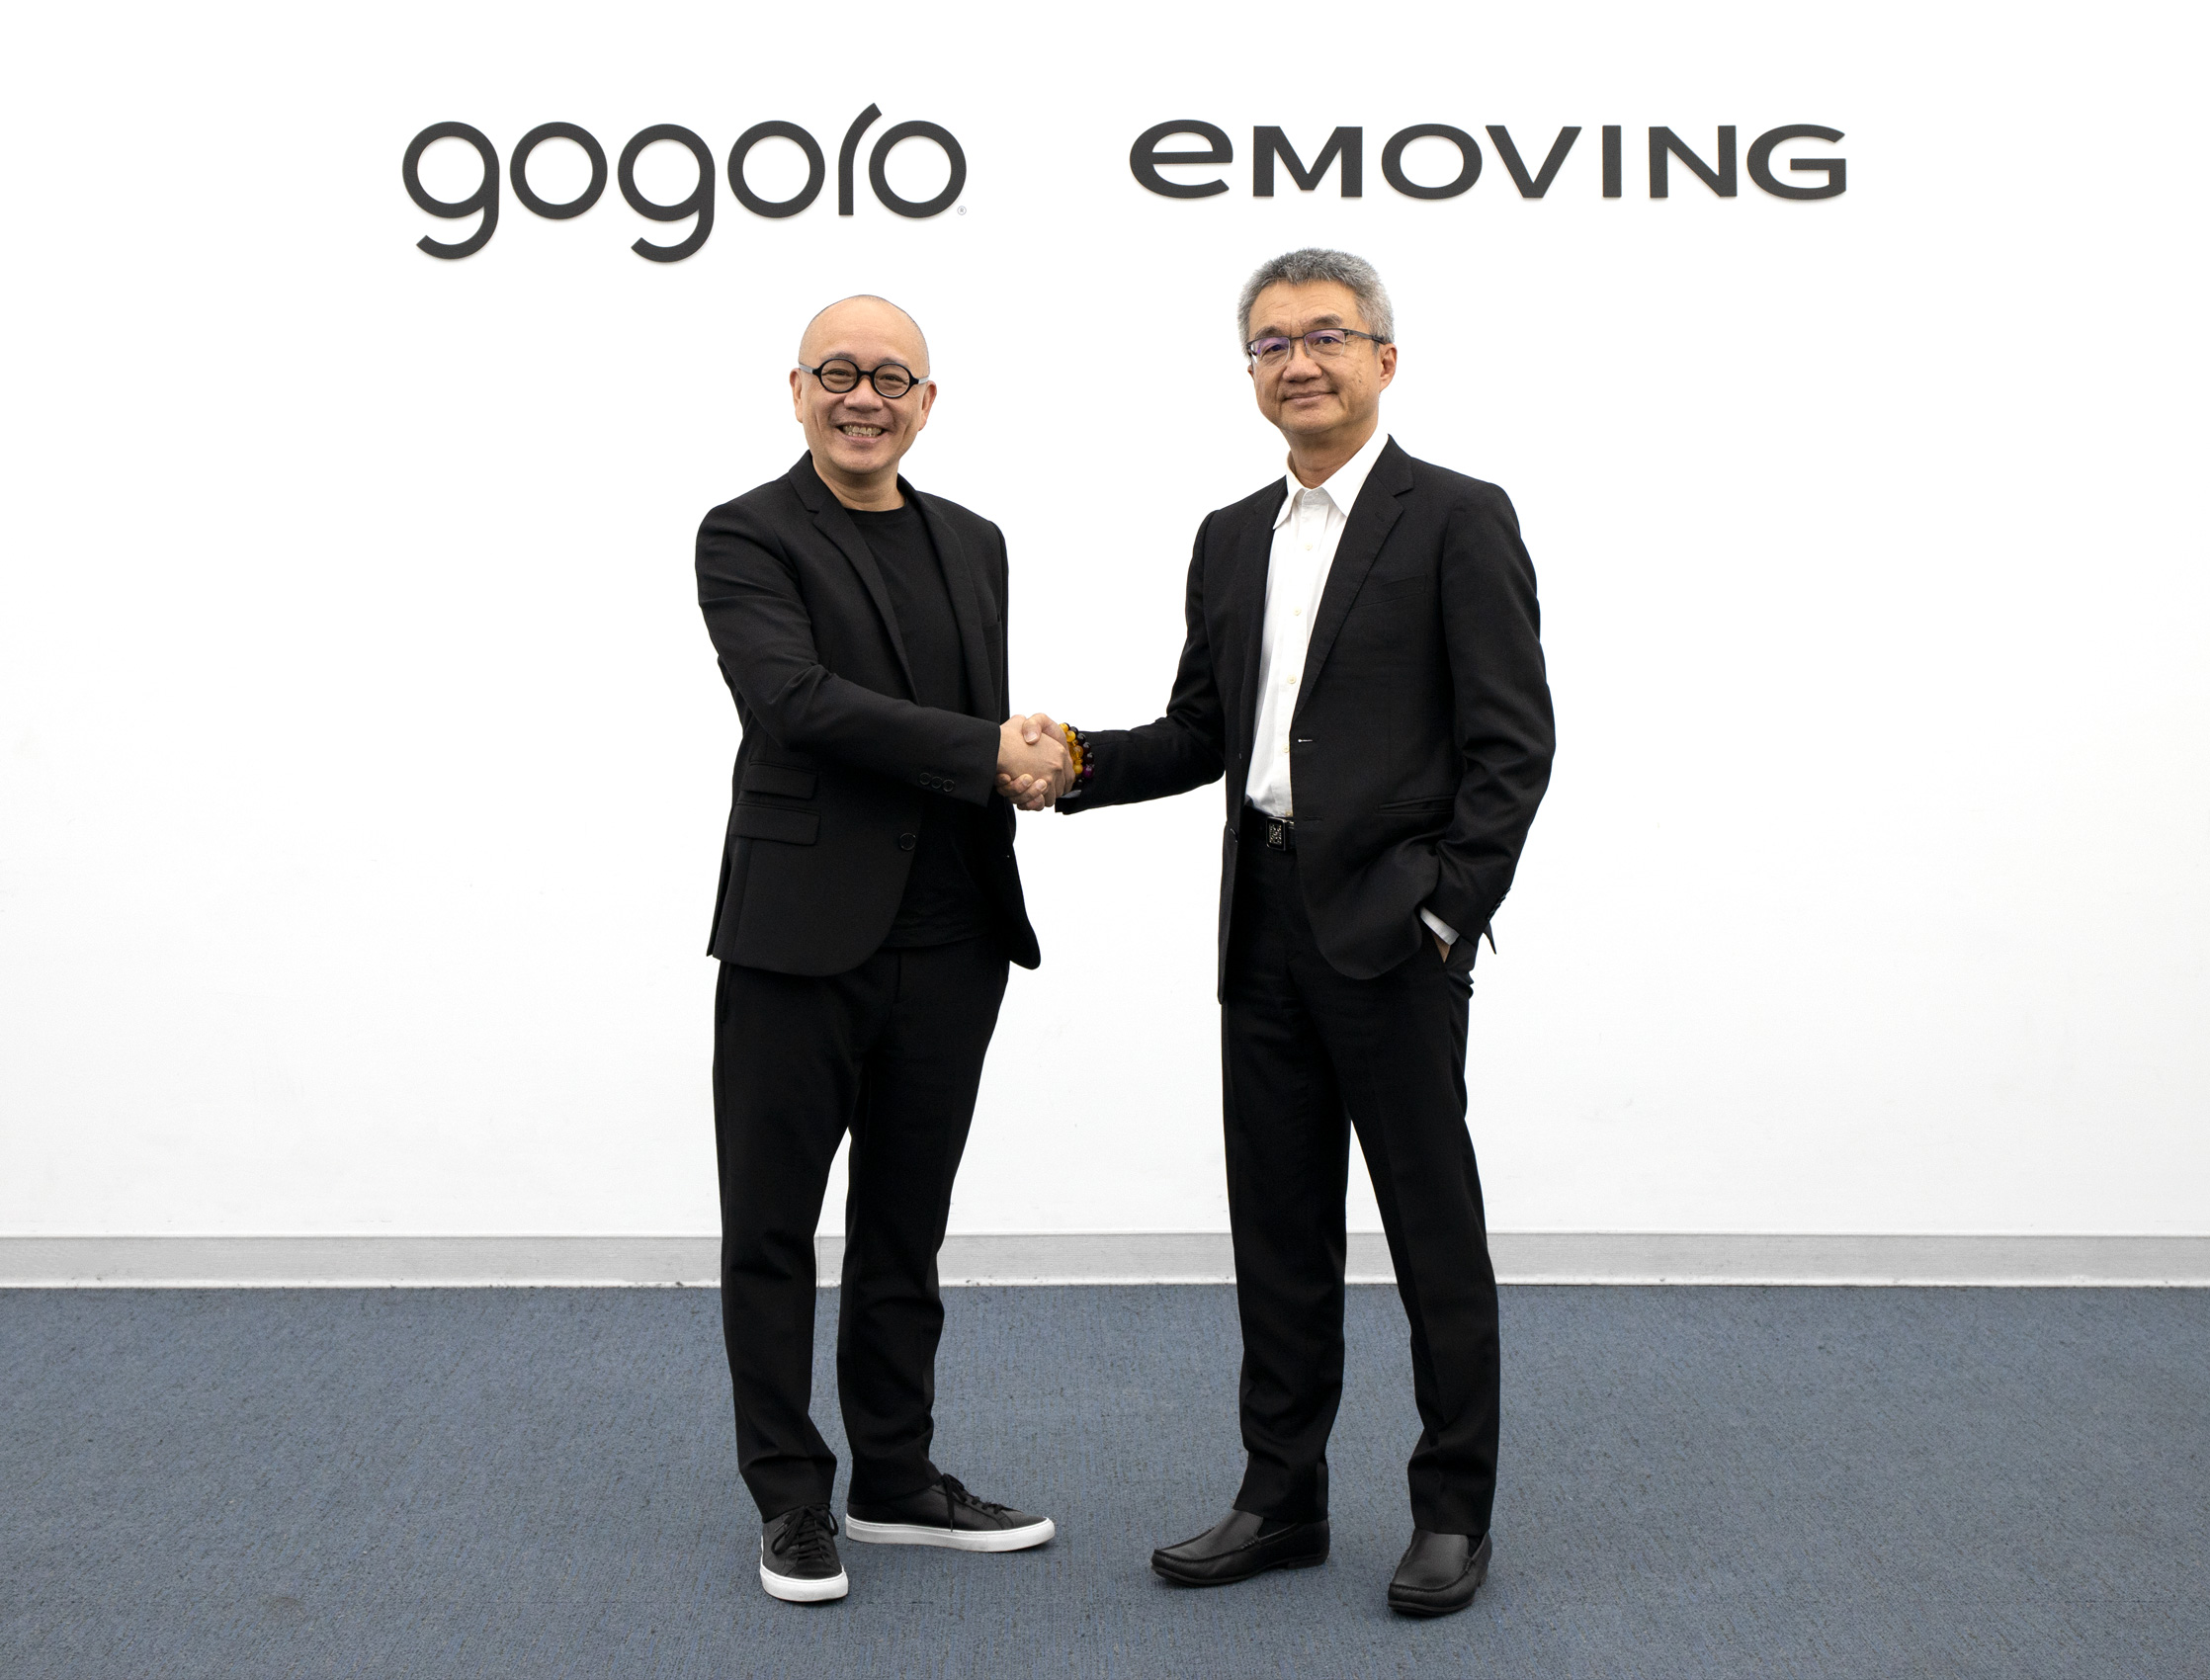 eMoving joins the PBGN alliance of smart electric Gogoro scooters